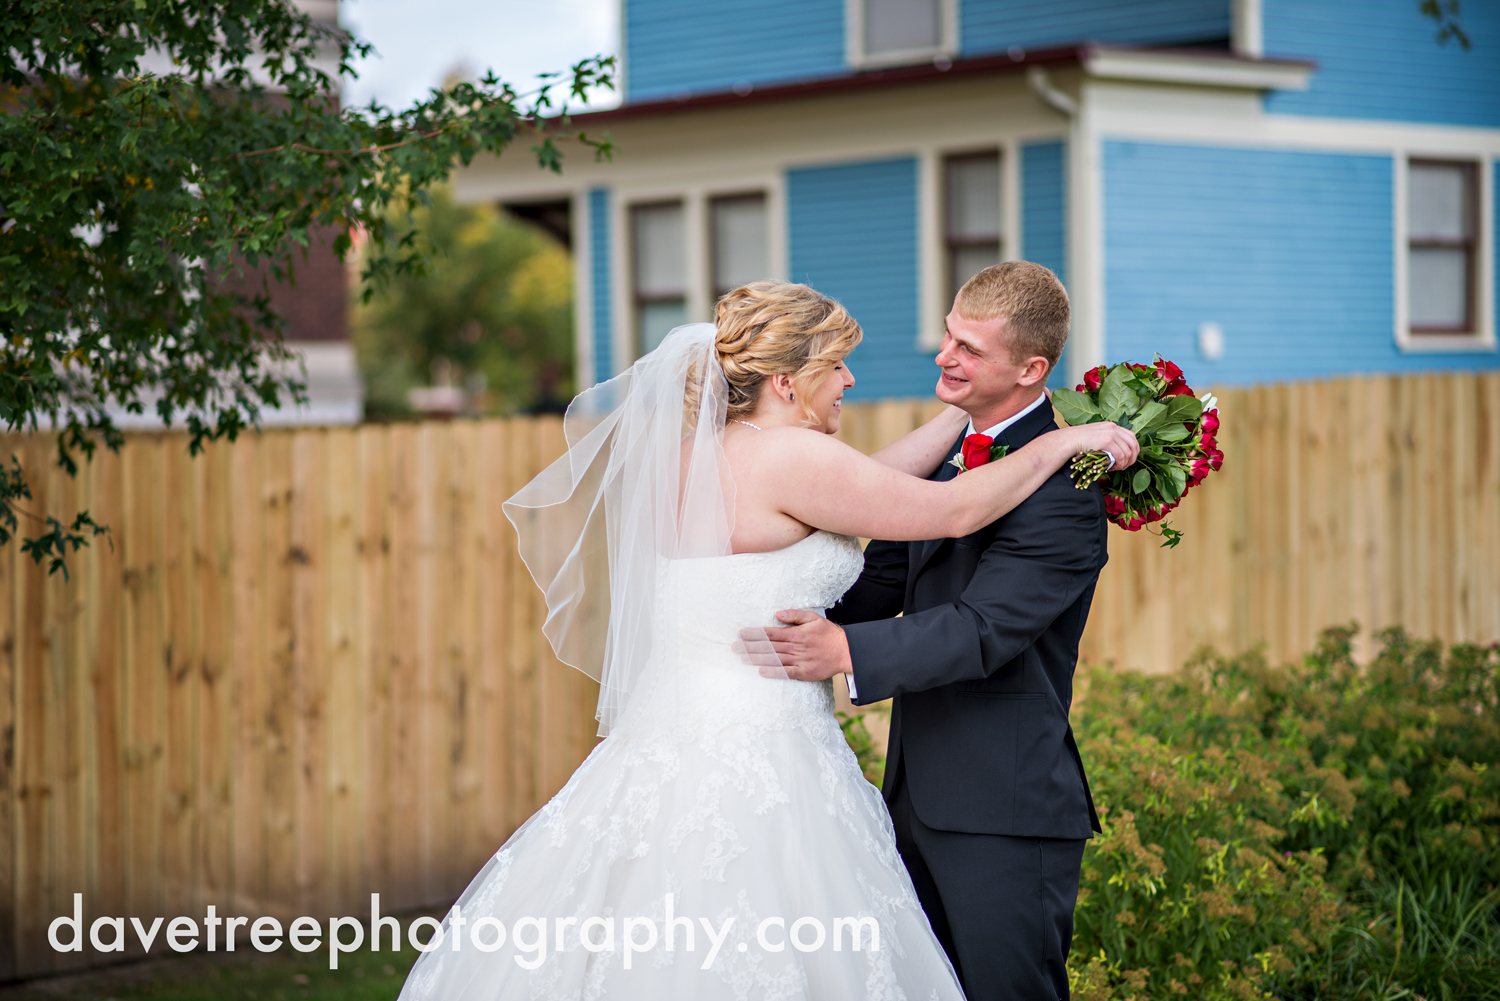 holland_wedding_photographer_73.jpg